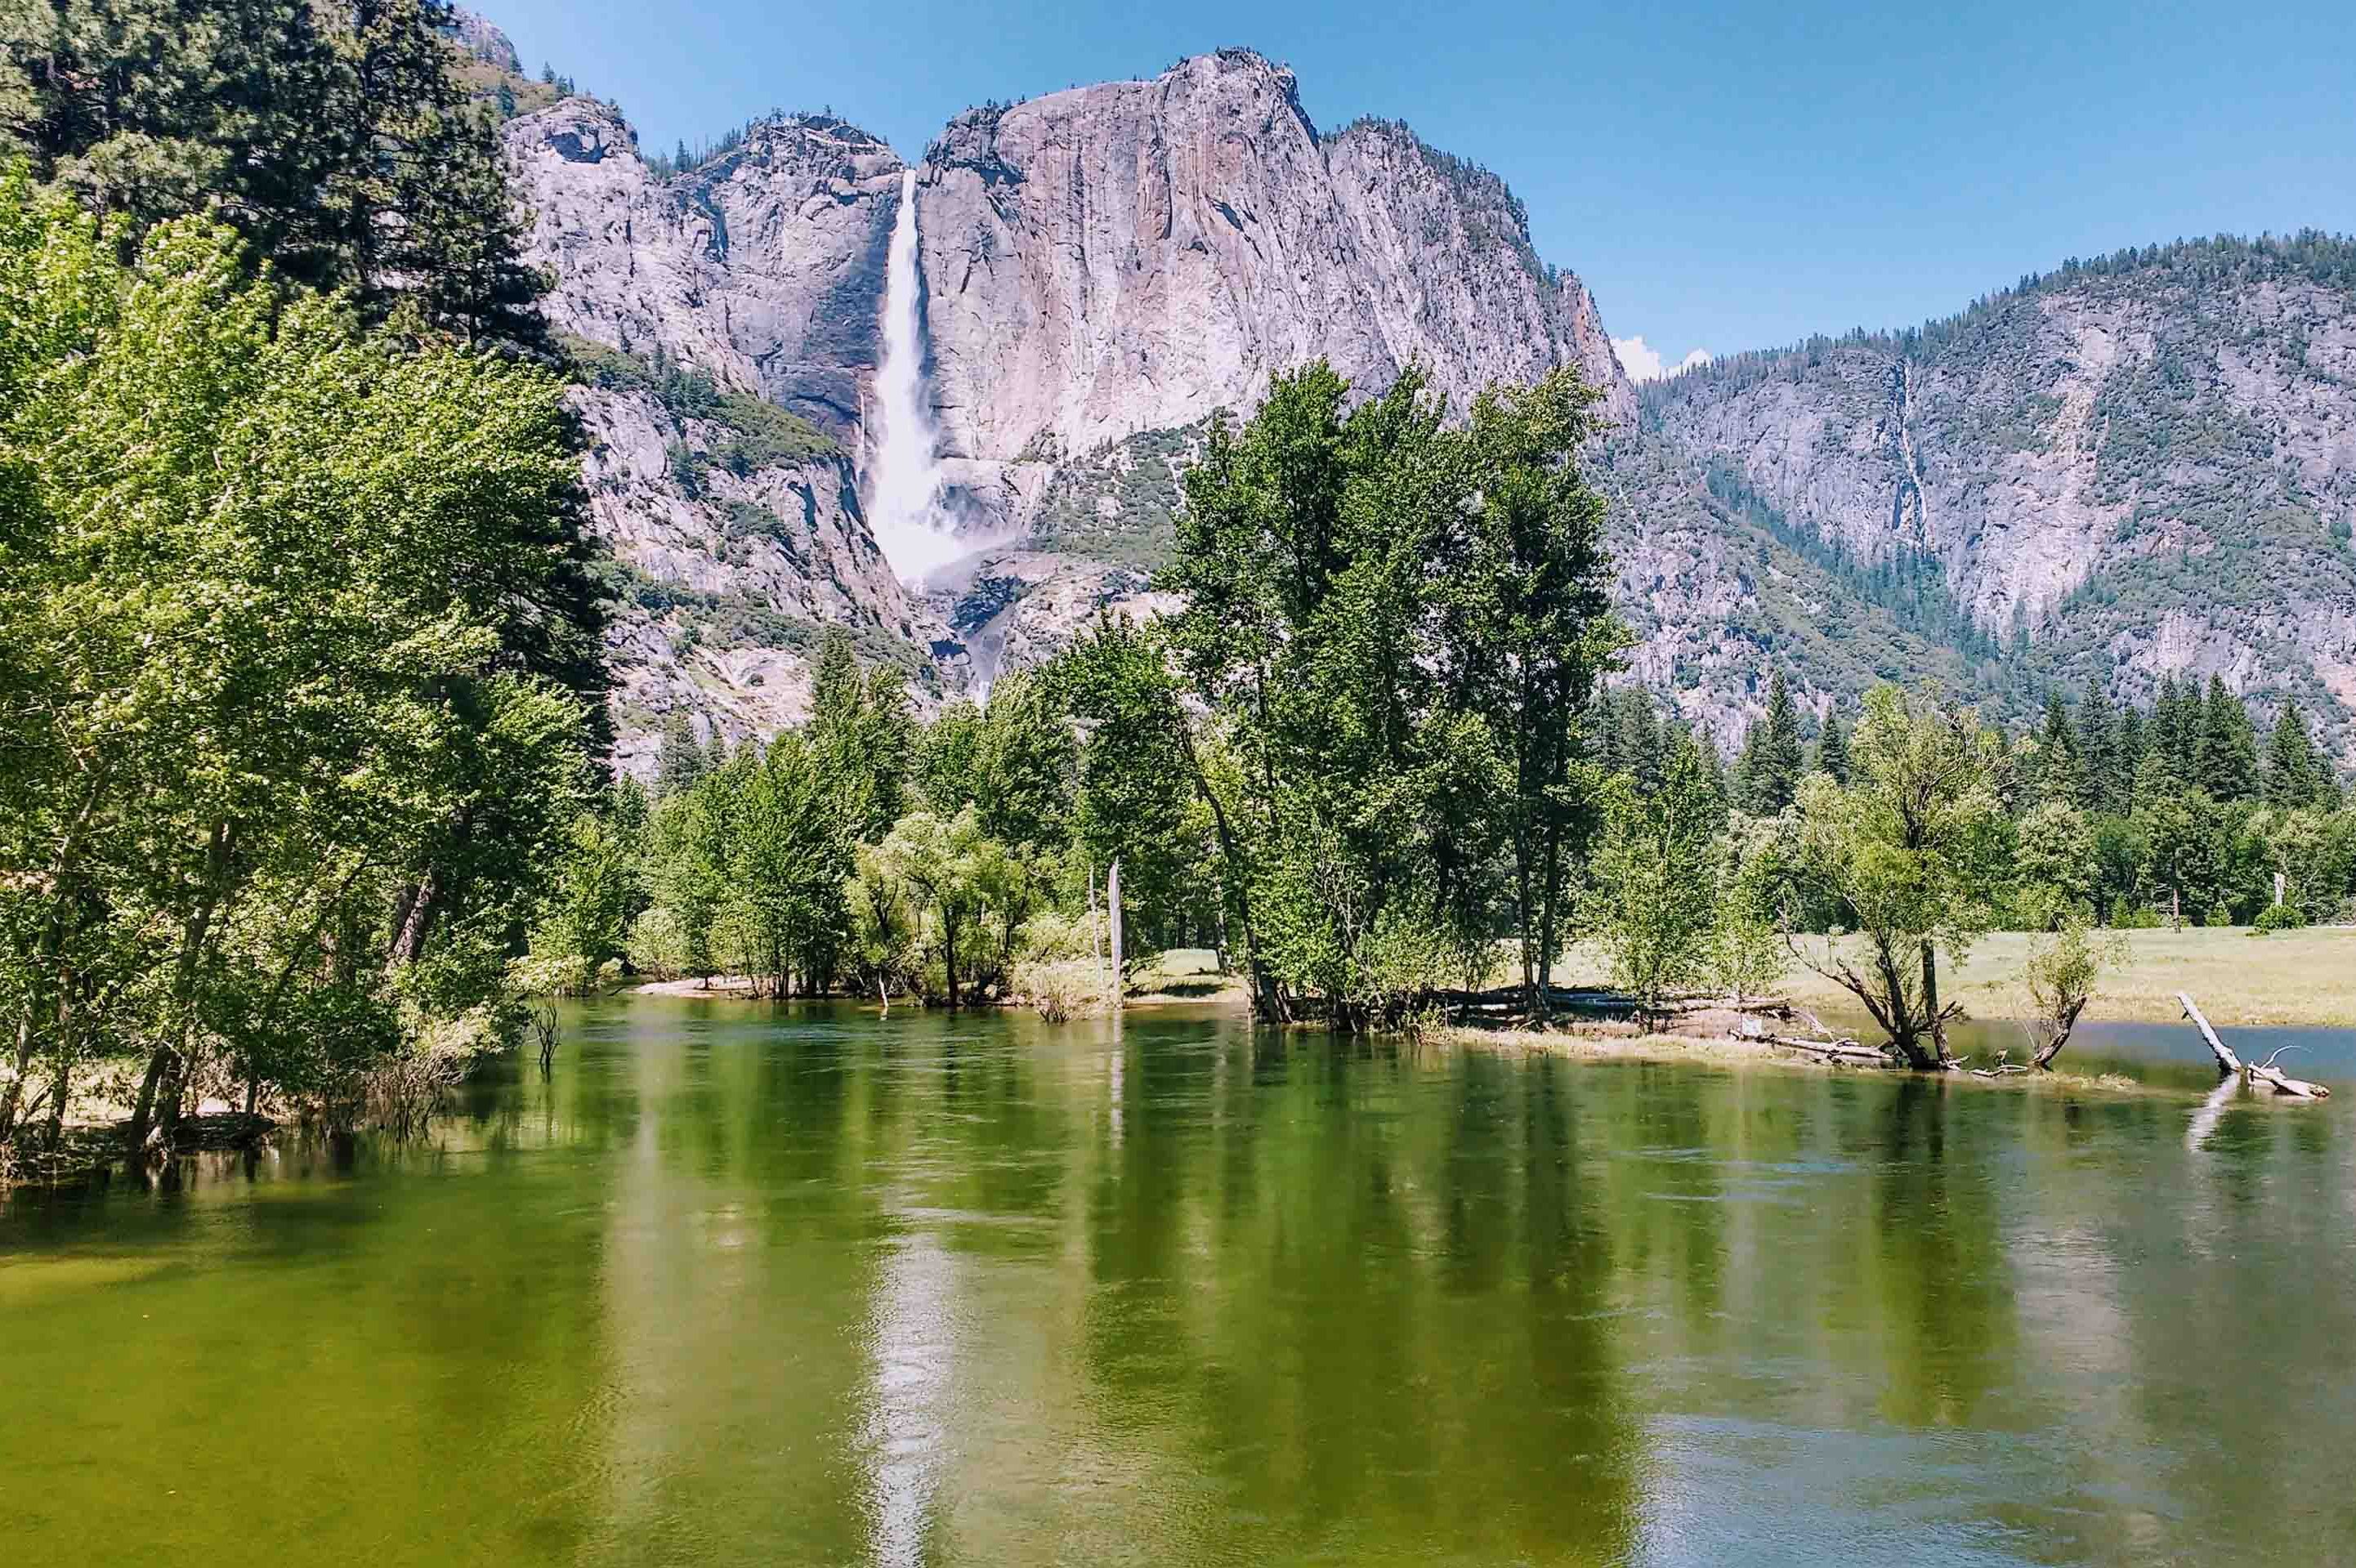 hike the Yosemite Valley on a guided tour with REI